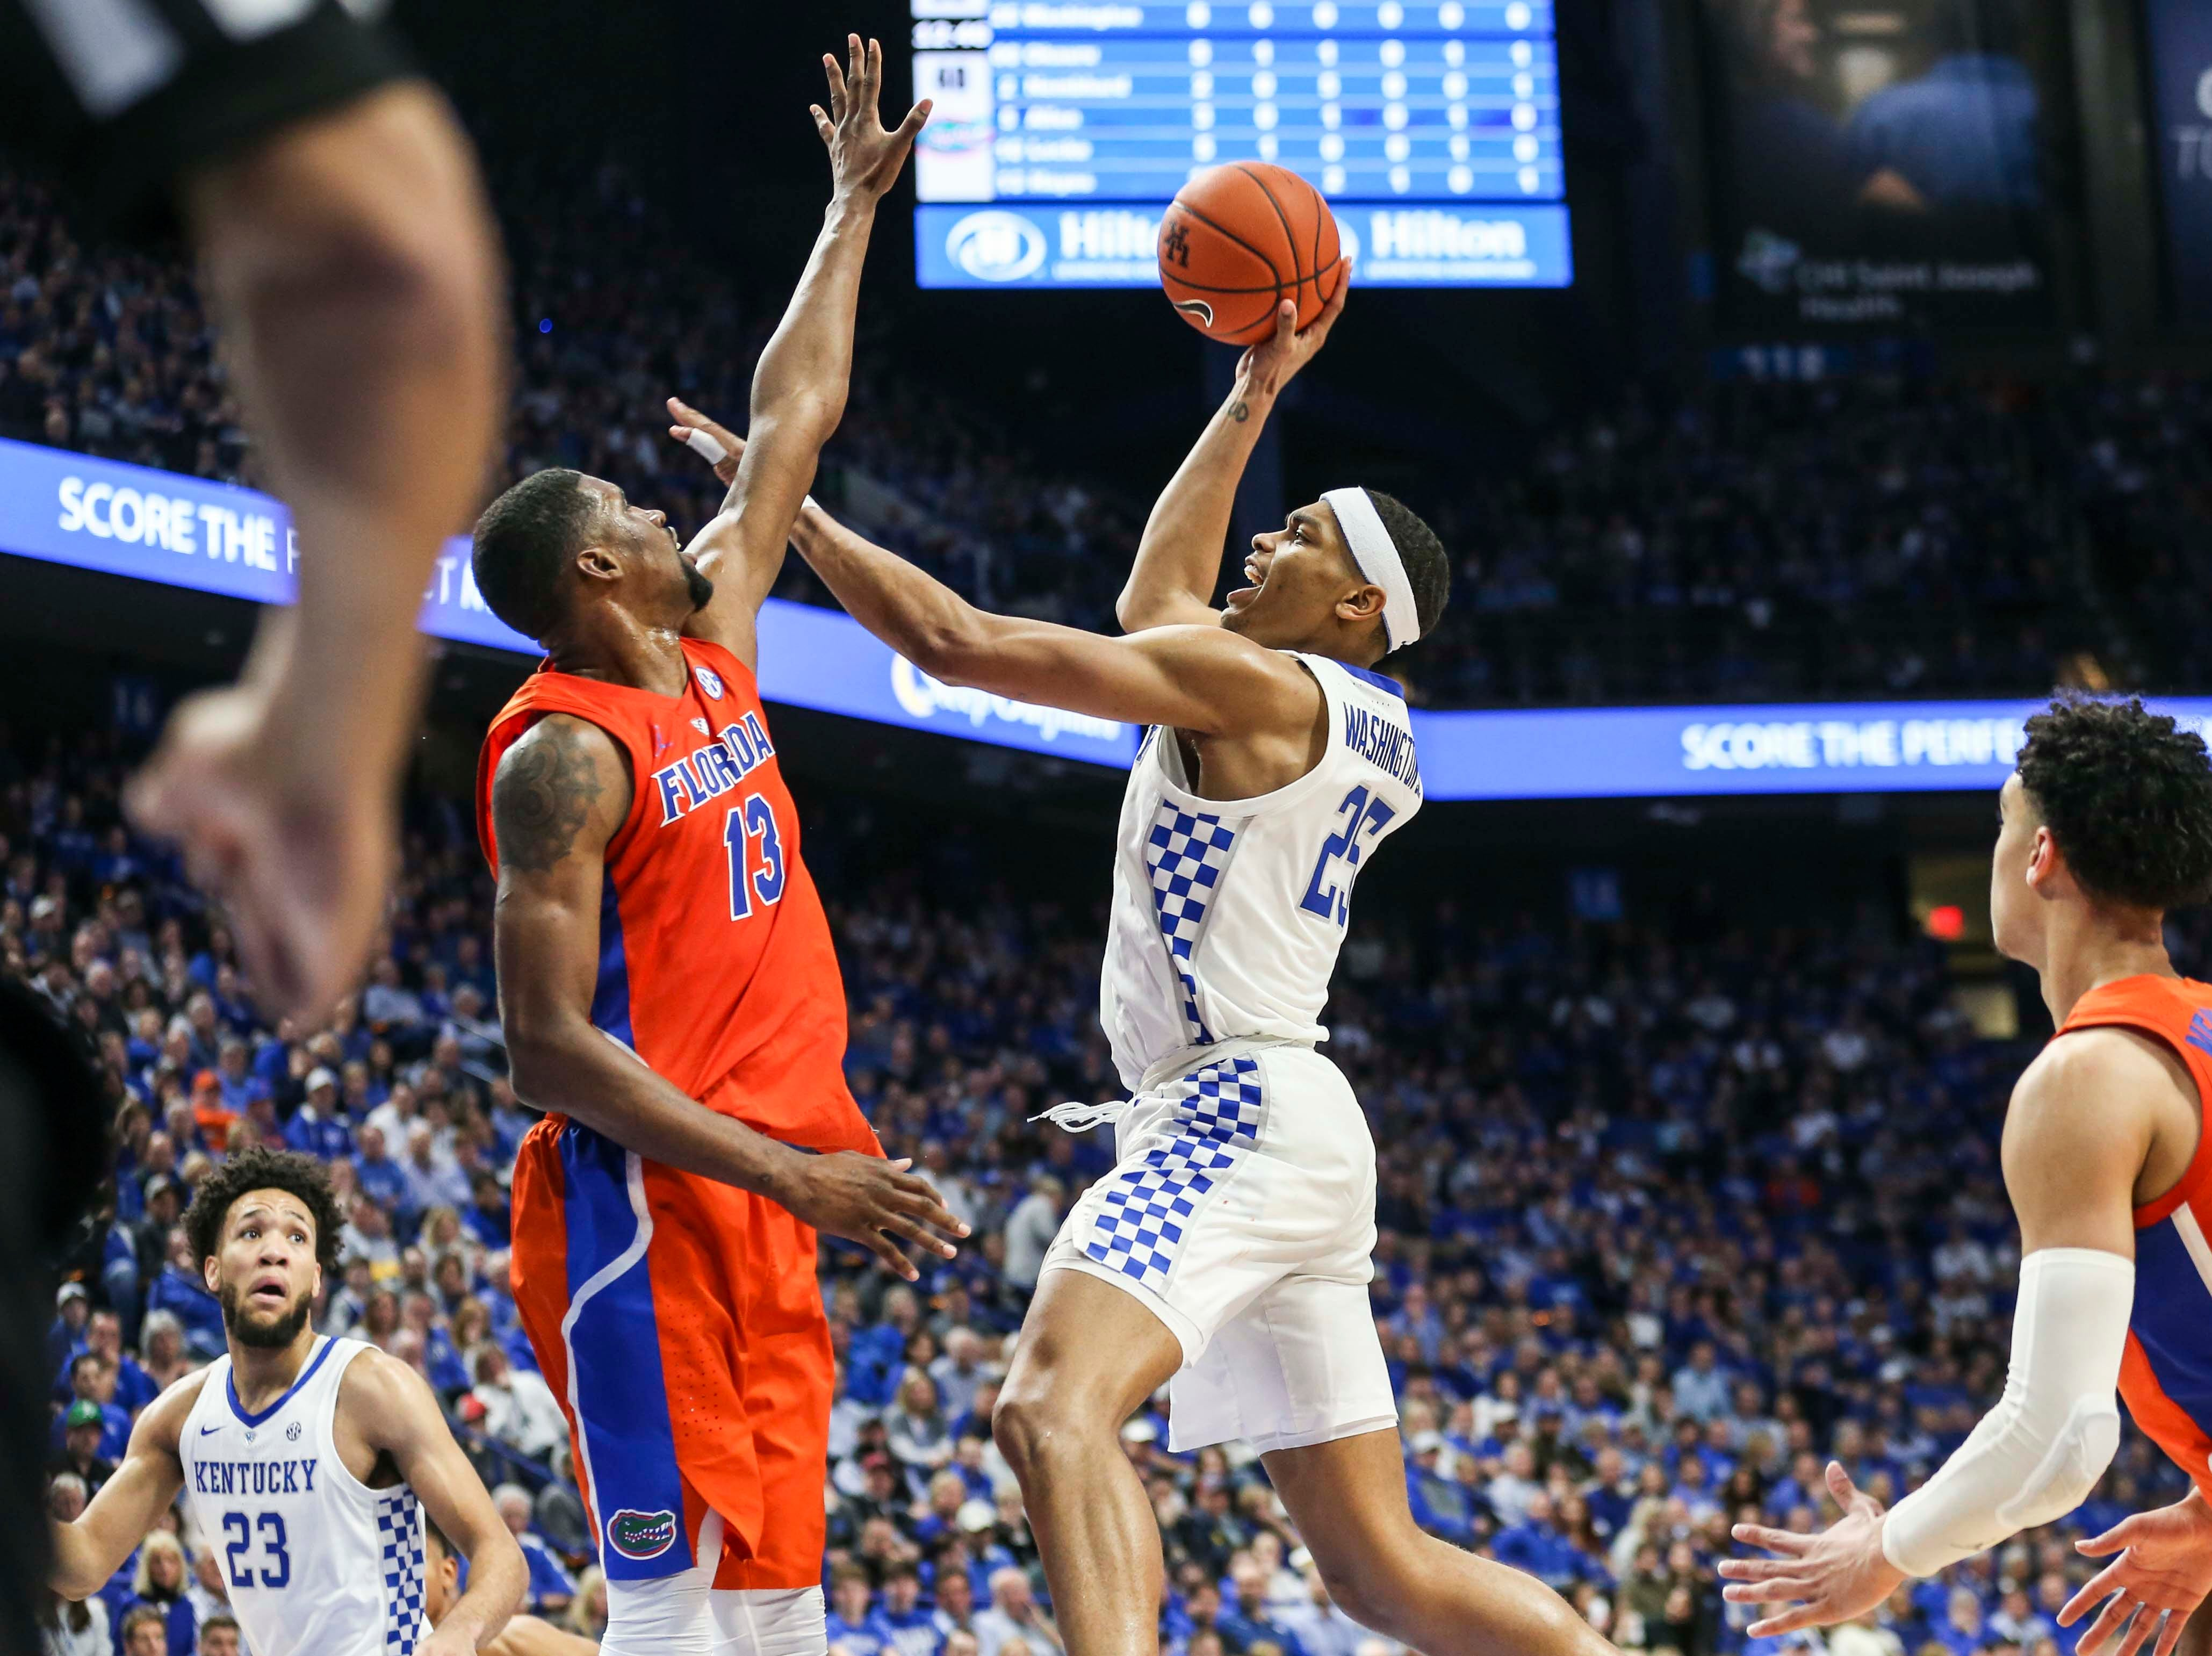 Kentucky's PJ Washington scored 15 points and had nine rebounds against Florida. Wildcats won, 66-57.  March 9, 2019